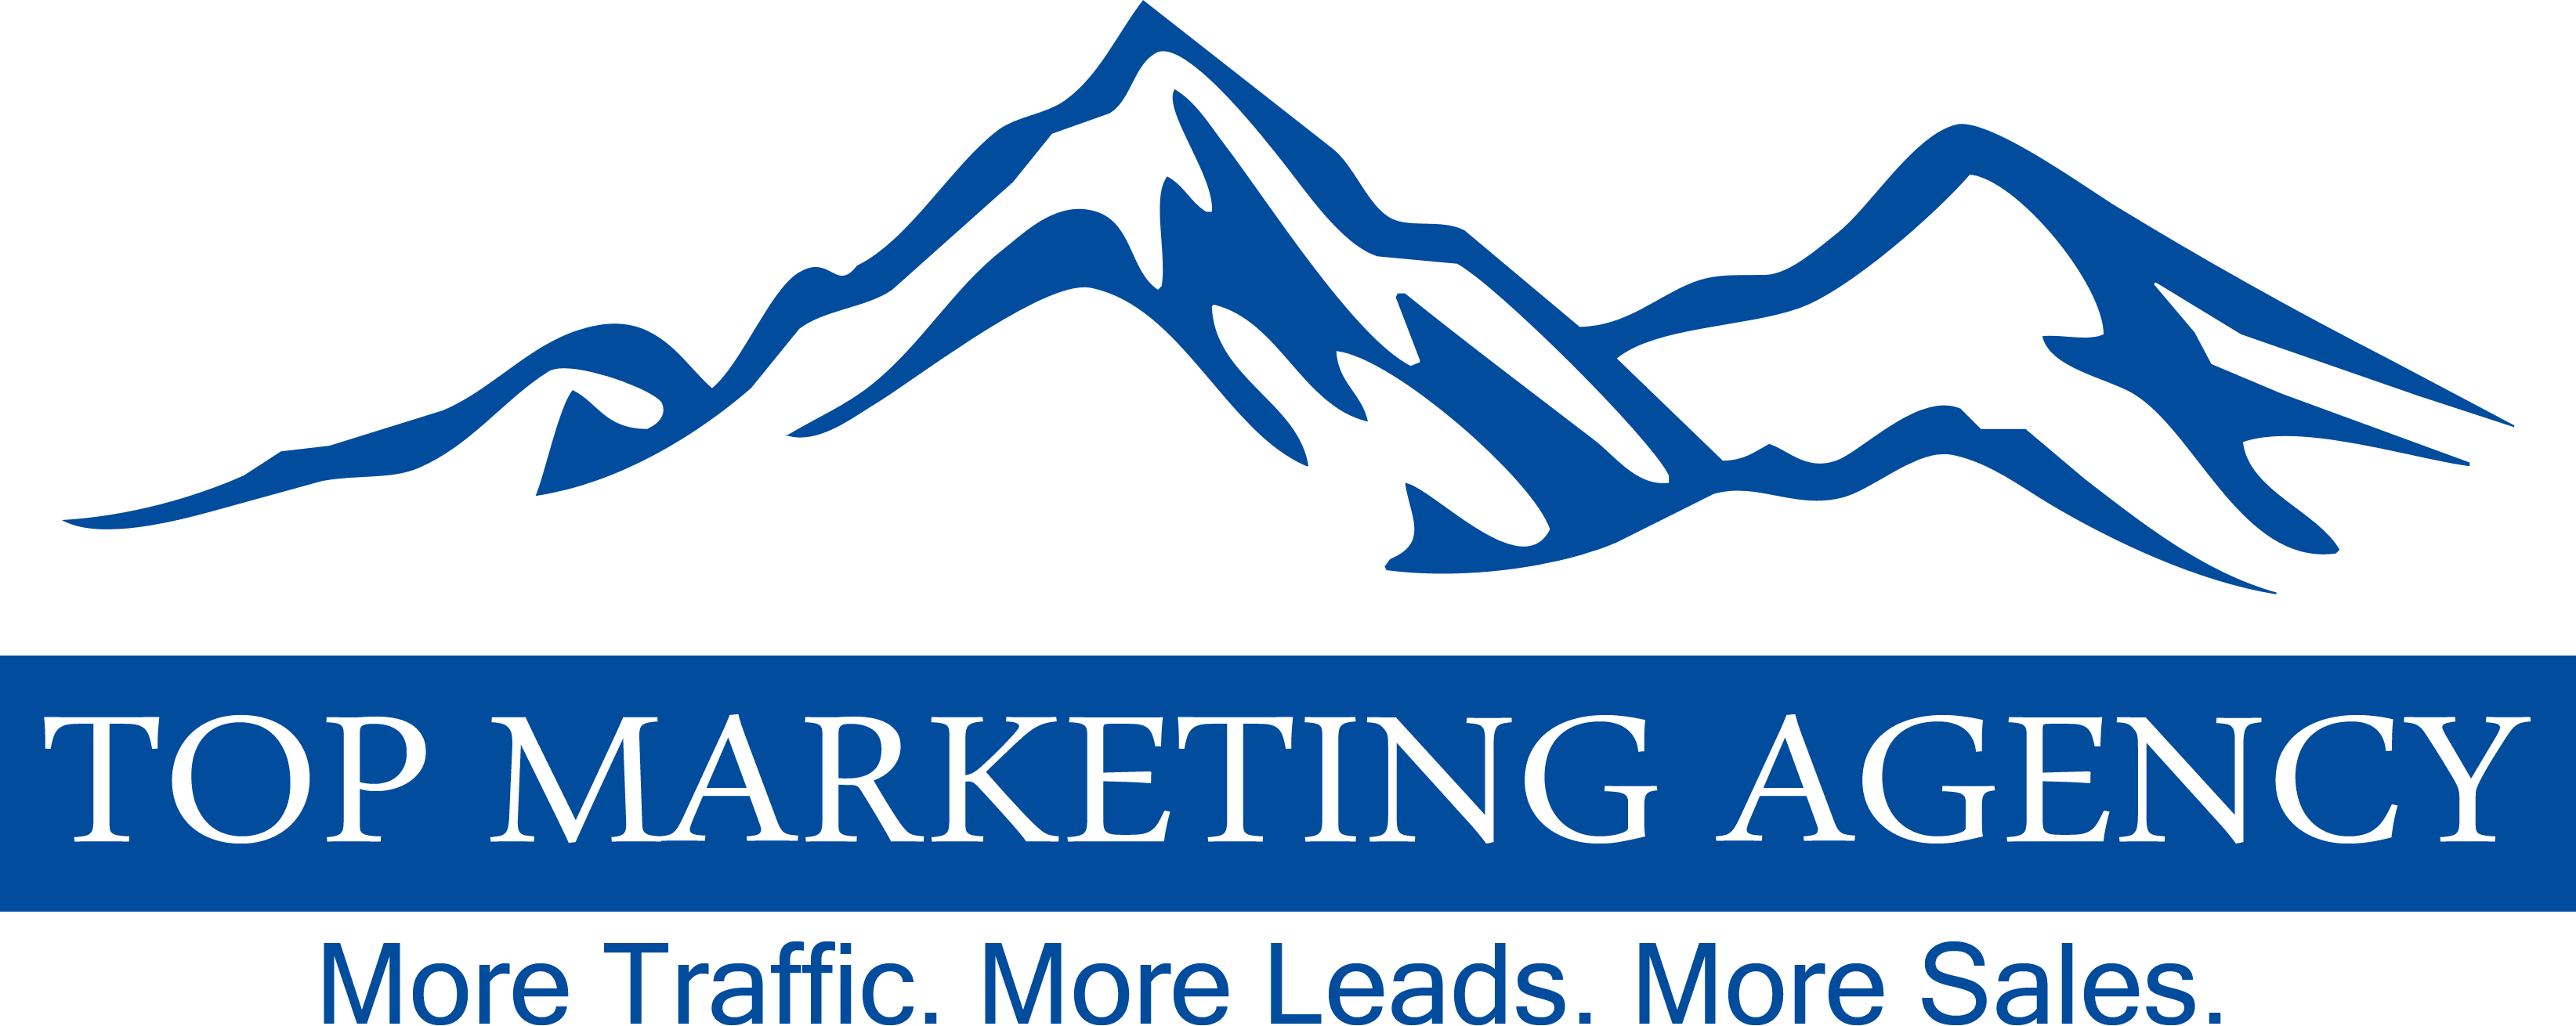 Top Marketing Agency Inc.